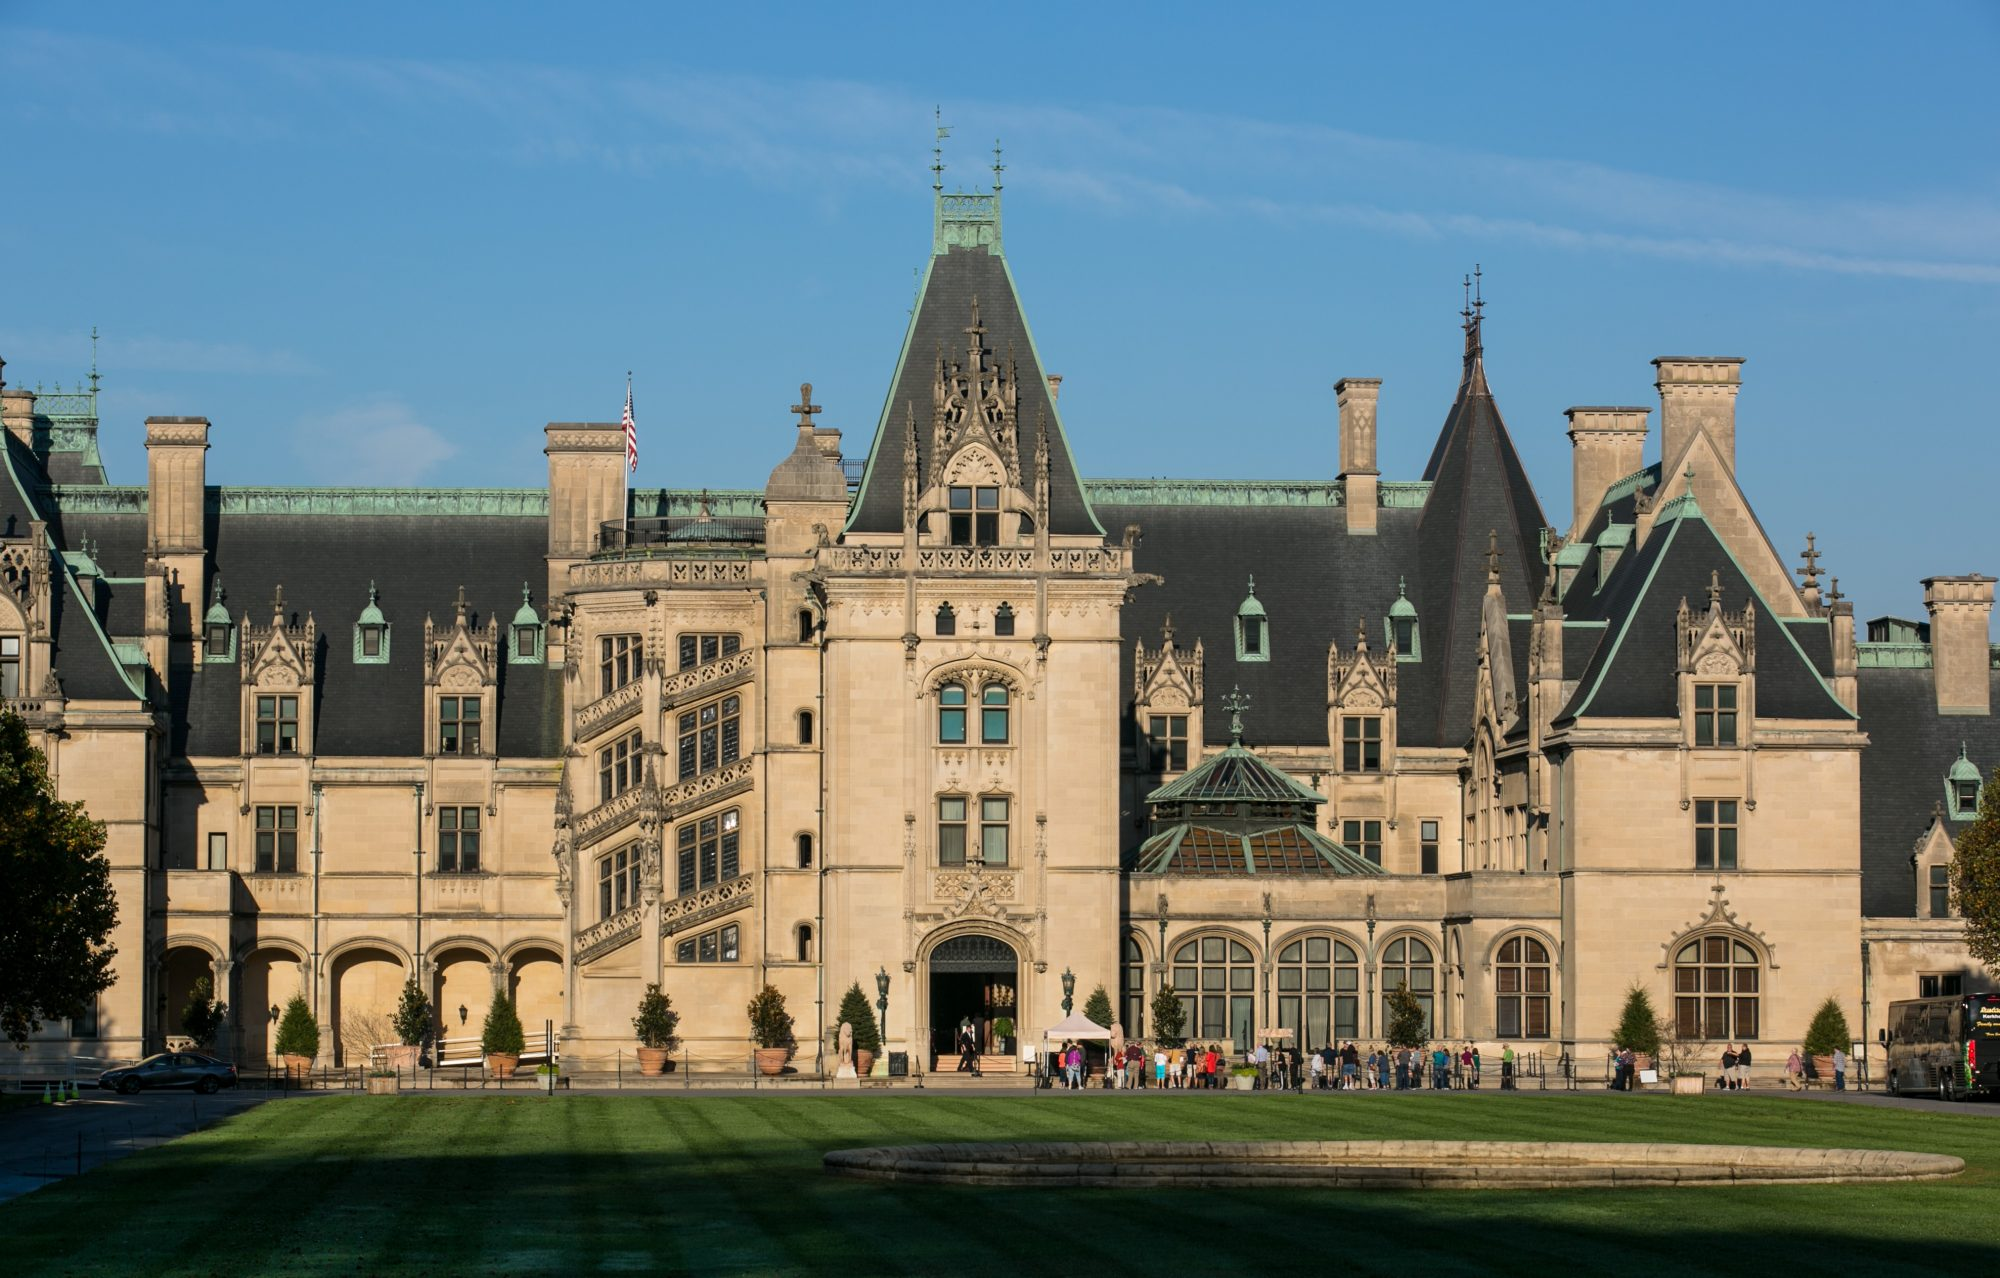 5 Things to Do at the Biltmore in Asheville, North Carolina This February